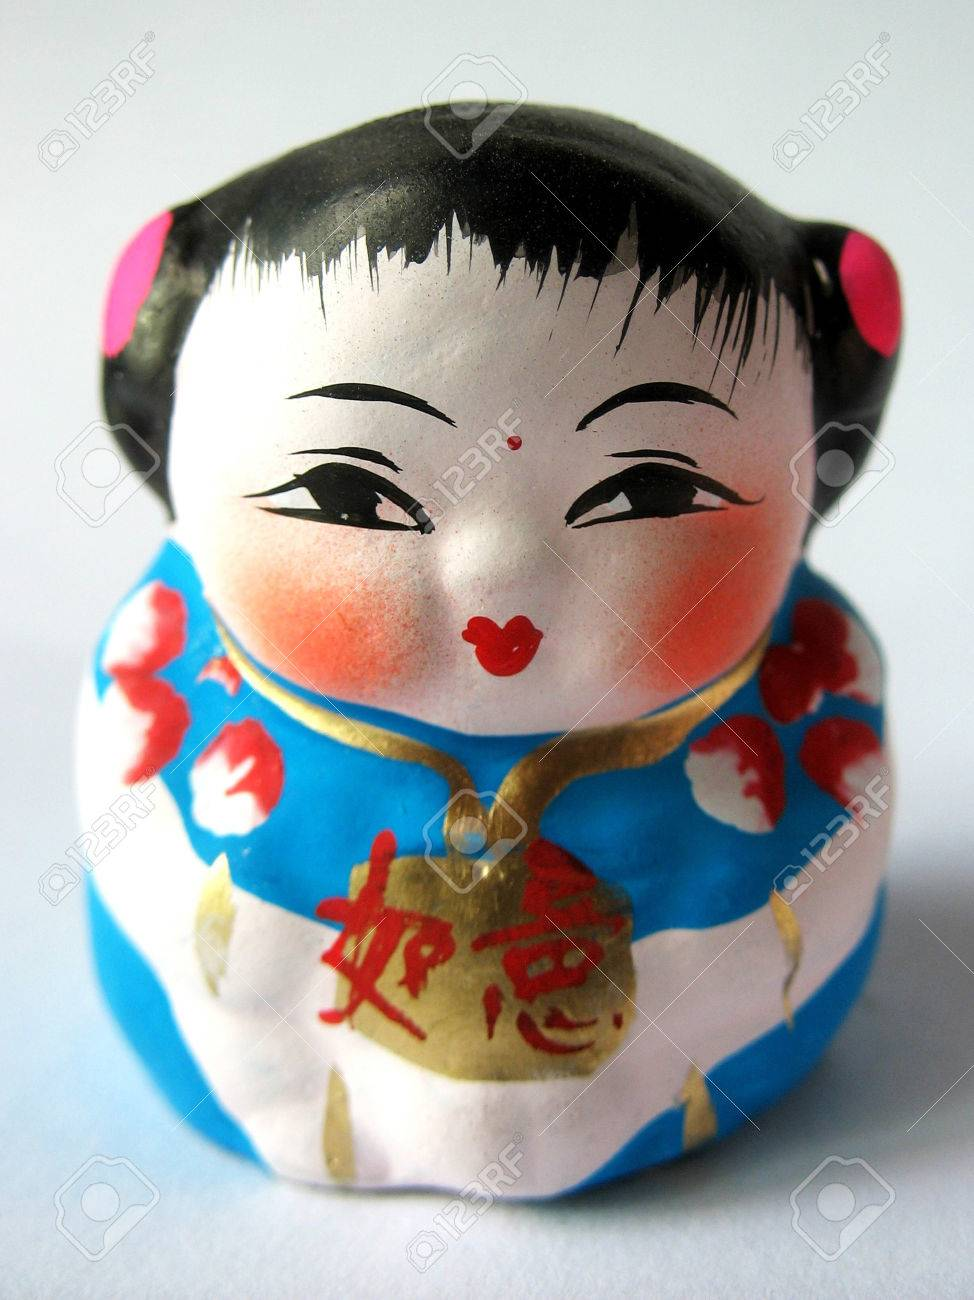 China Doll Stock Photo Picture And Royalty Free Image Image 34936763